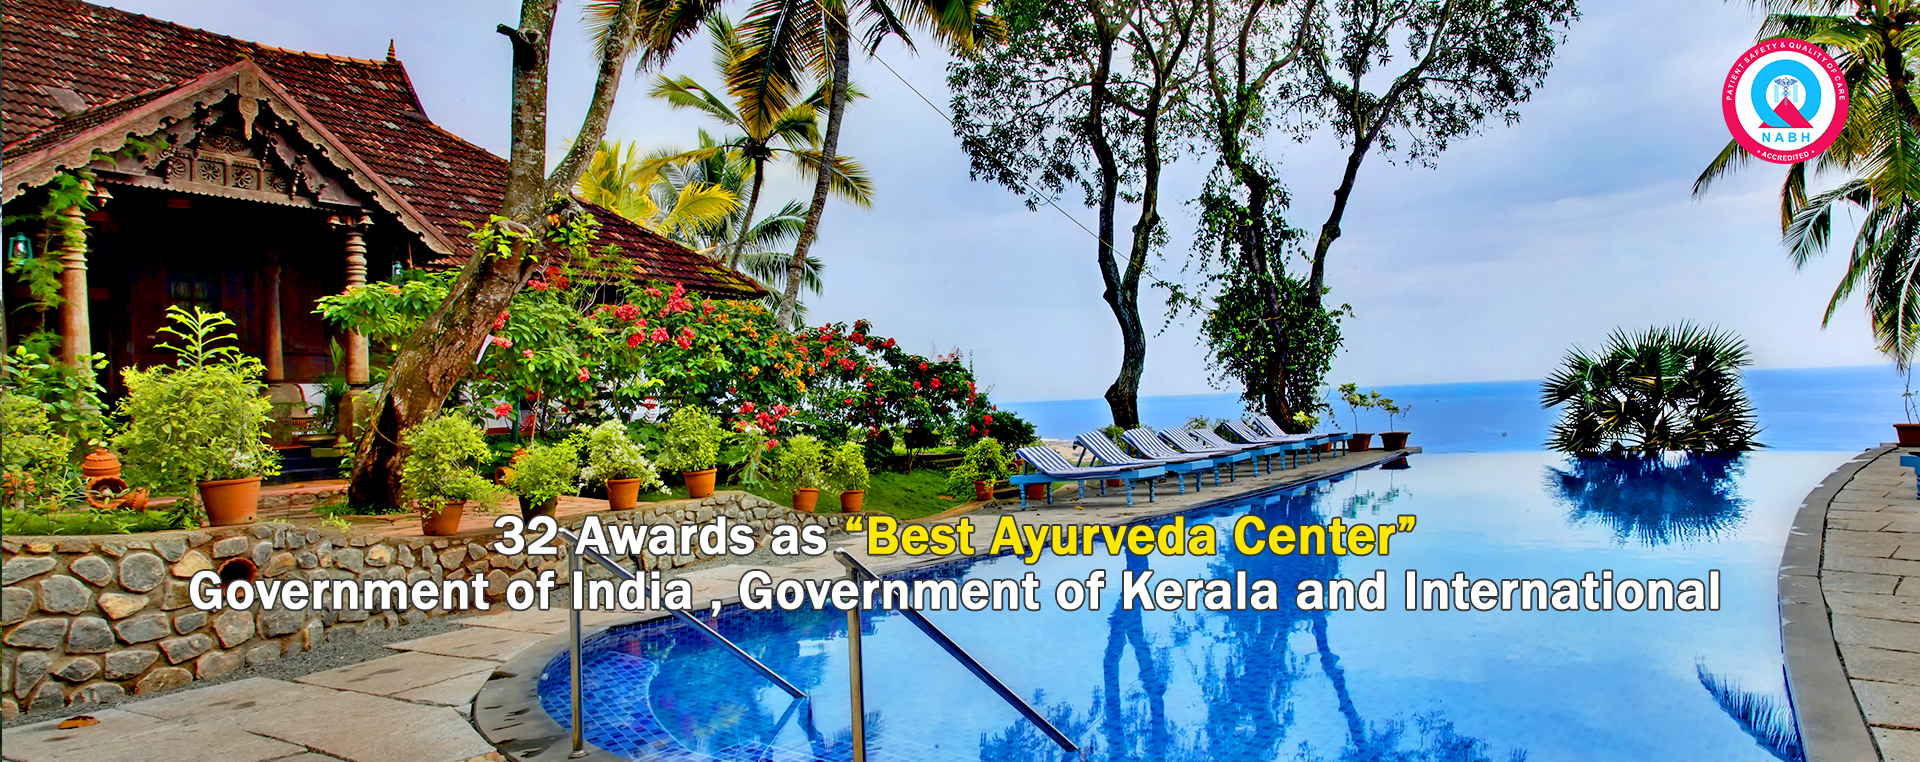 "32 Awards as ""Best Ayurveda Center""